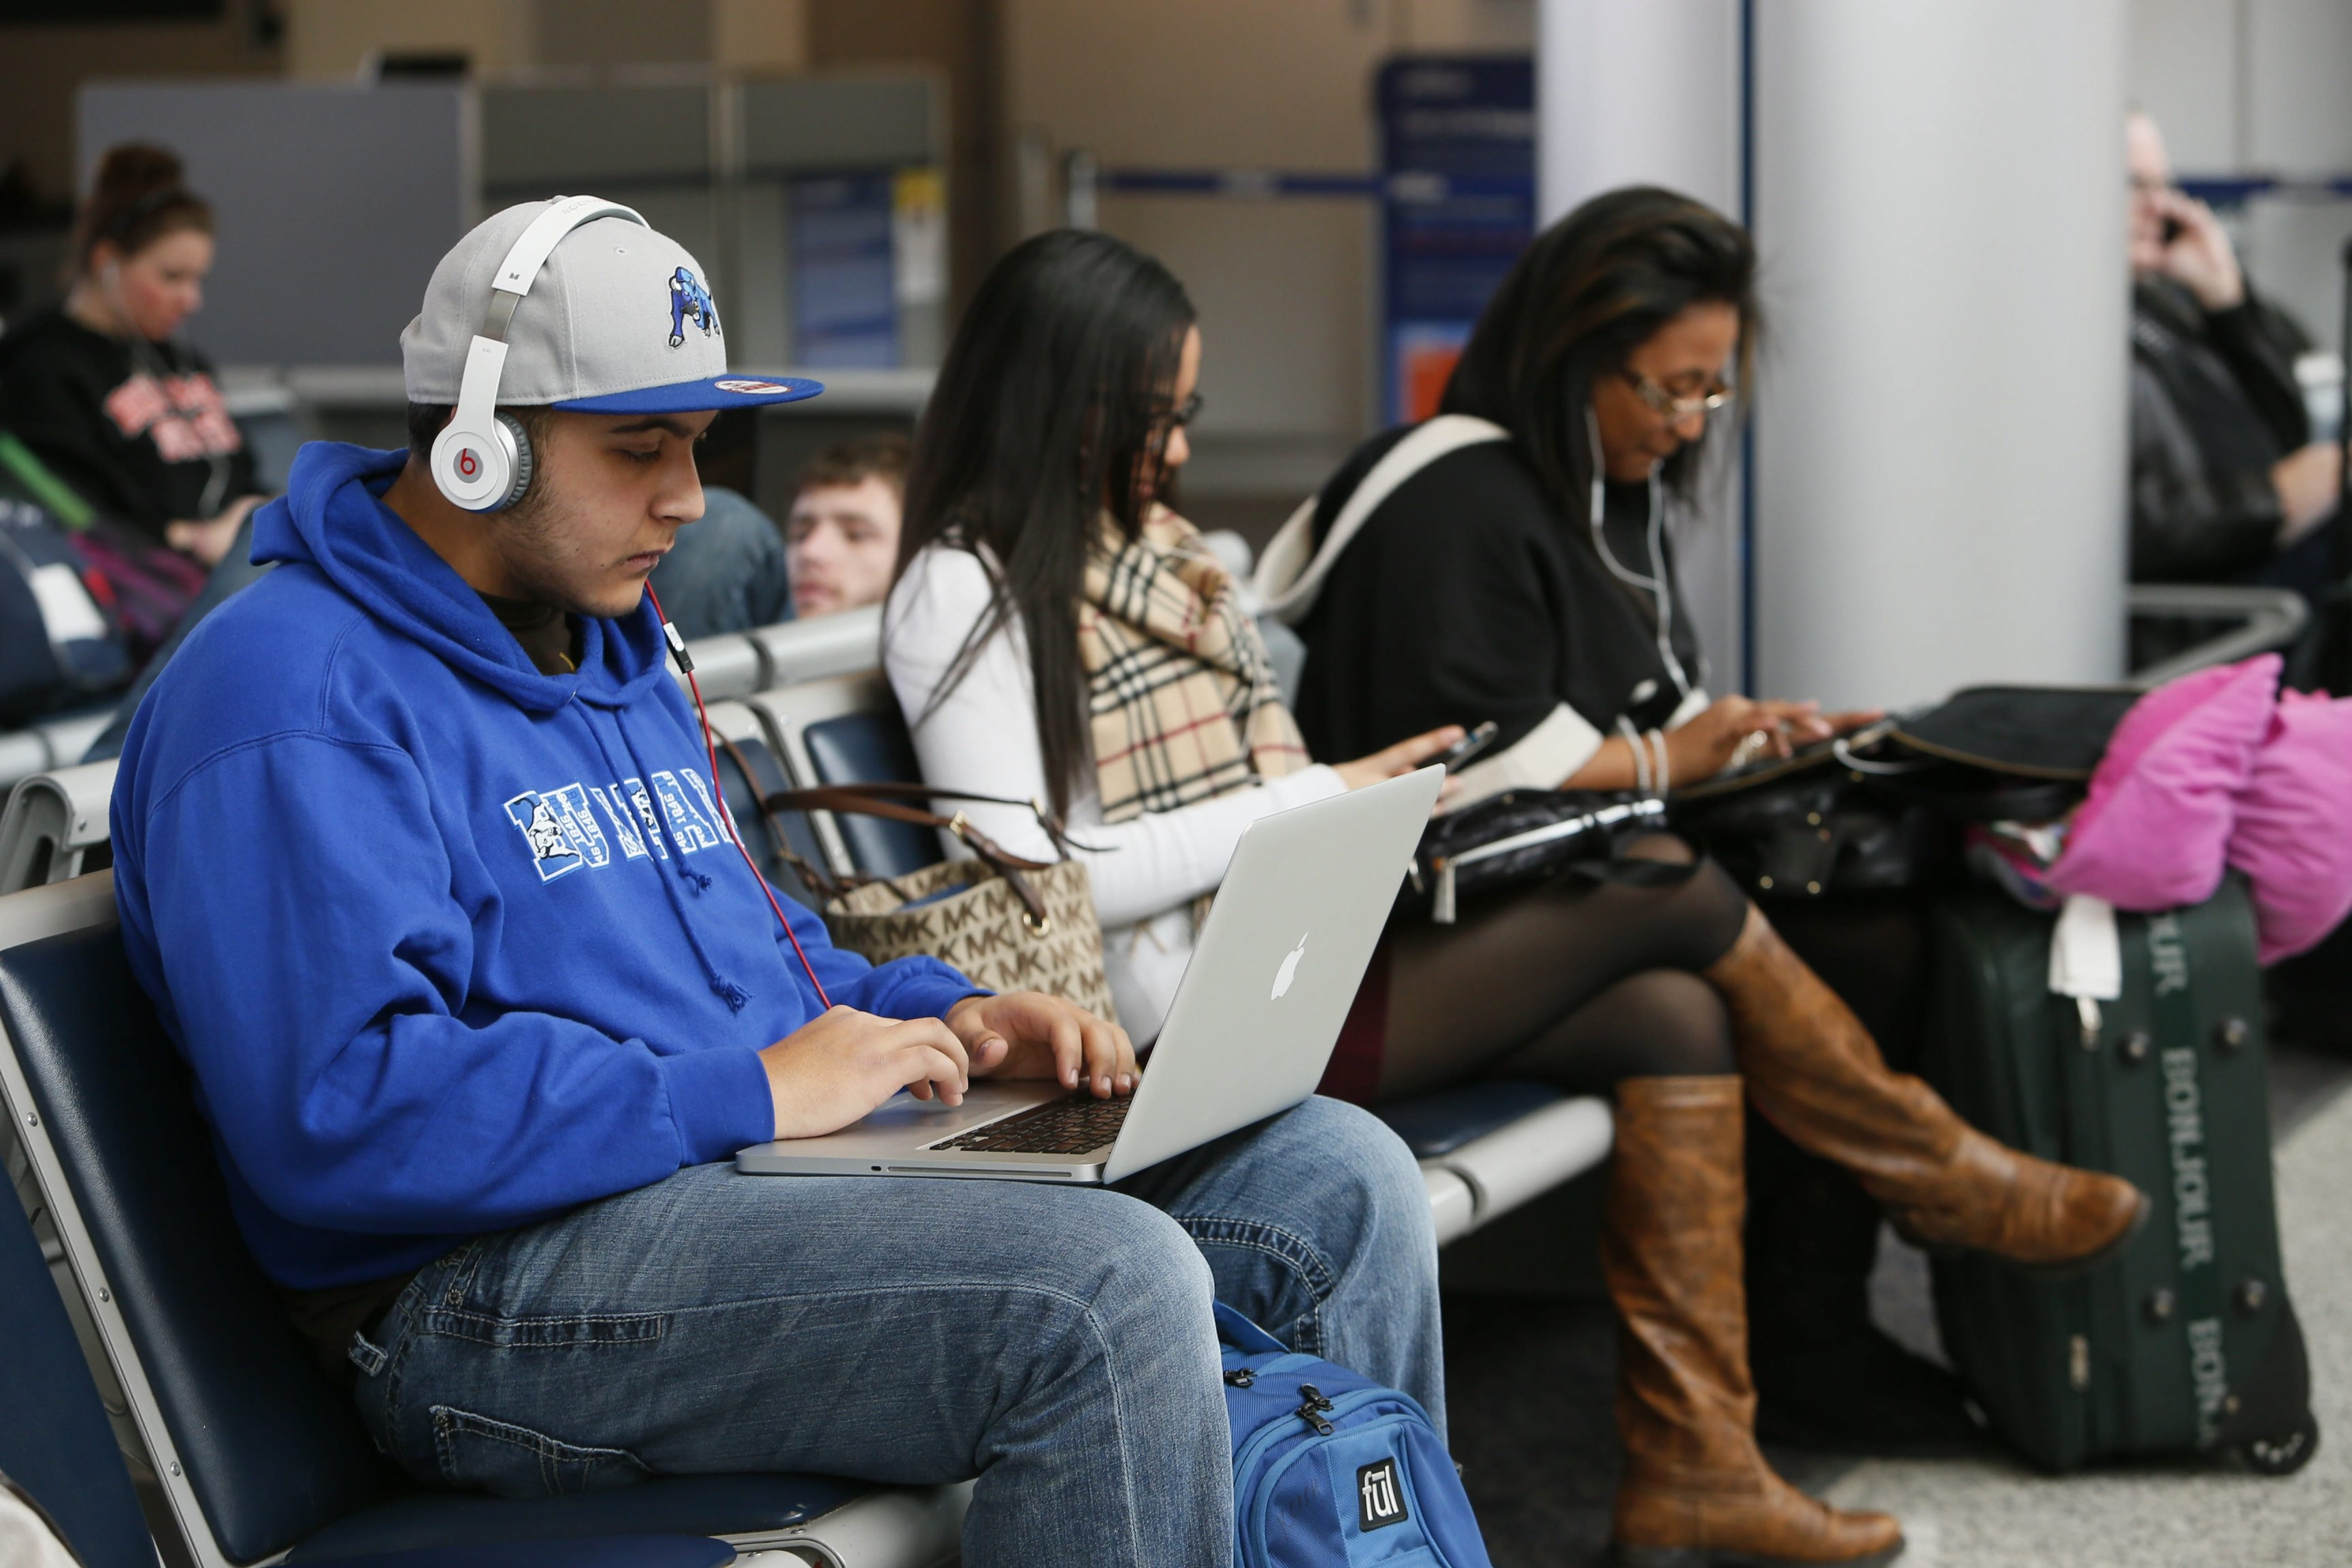 UB student Kush Grover gets comfortable at the Buffalo Niagara International Airport Tuesday while waiting for his flight home.